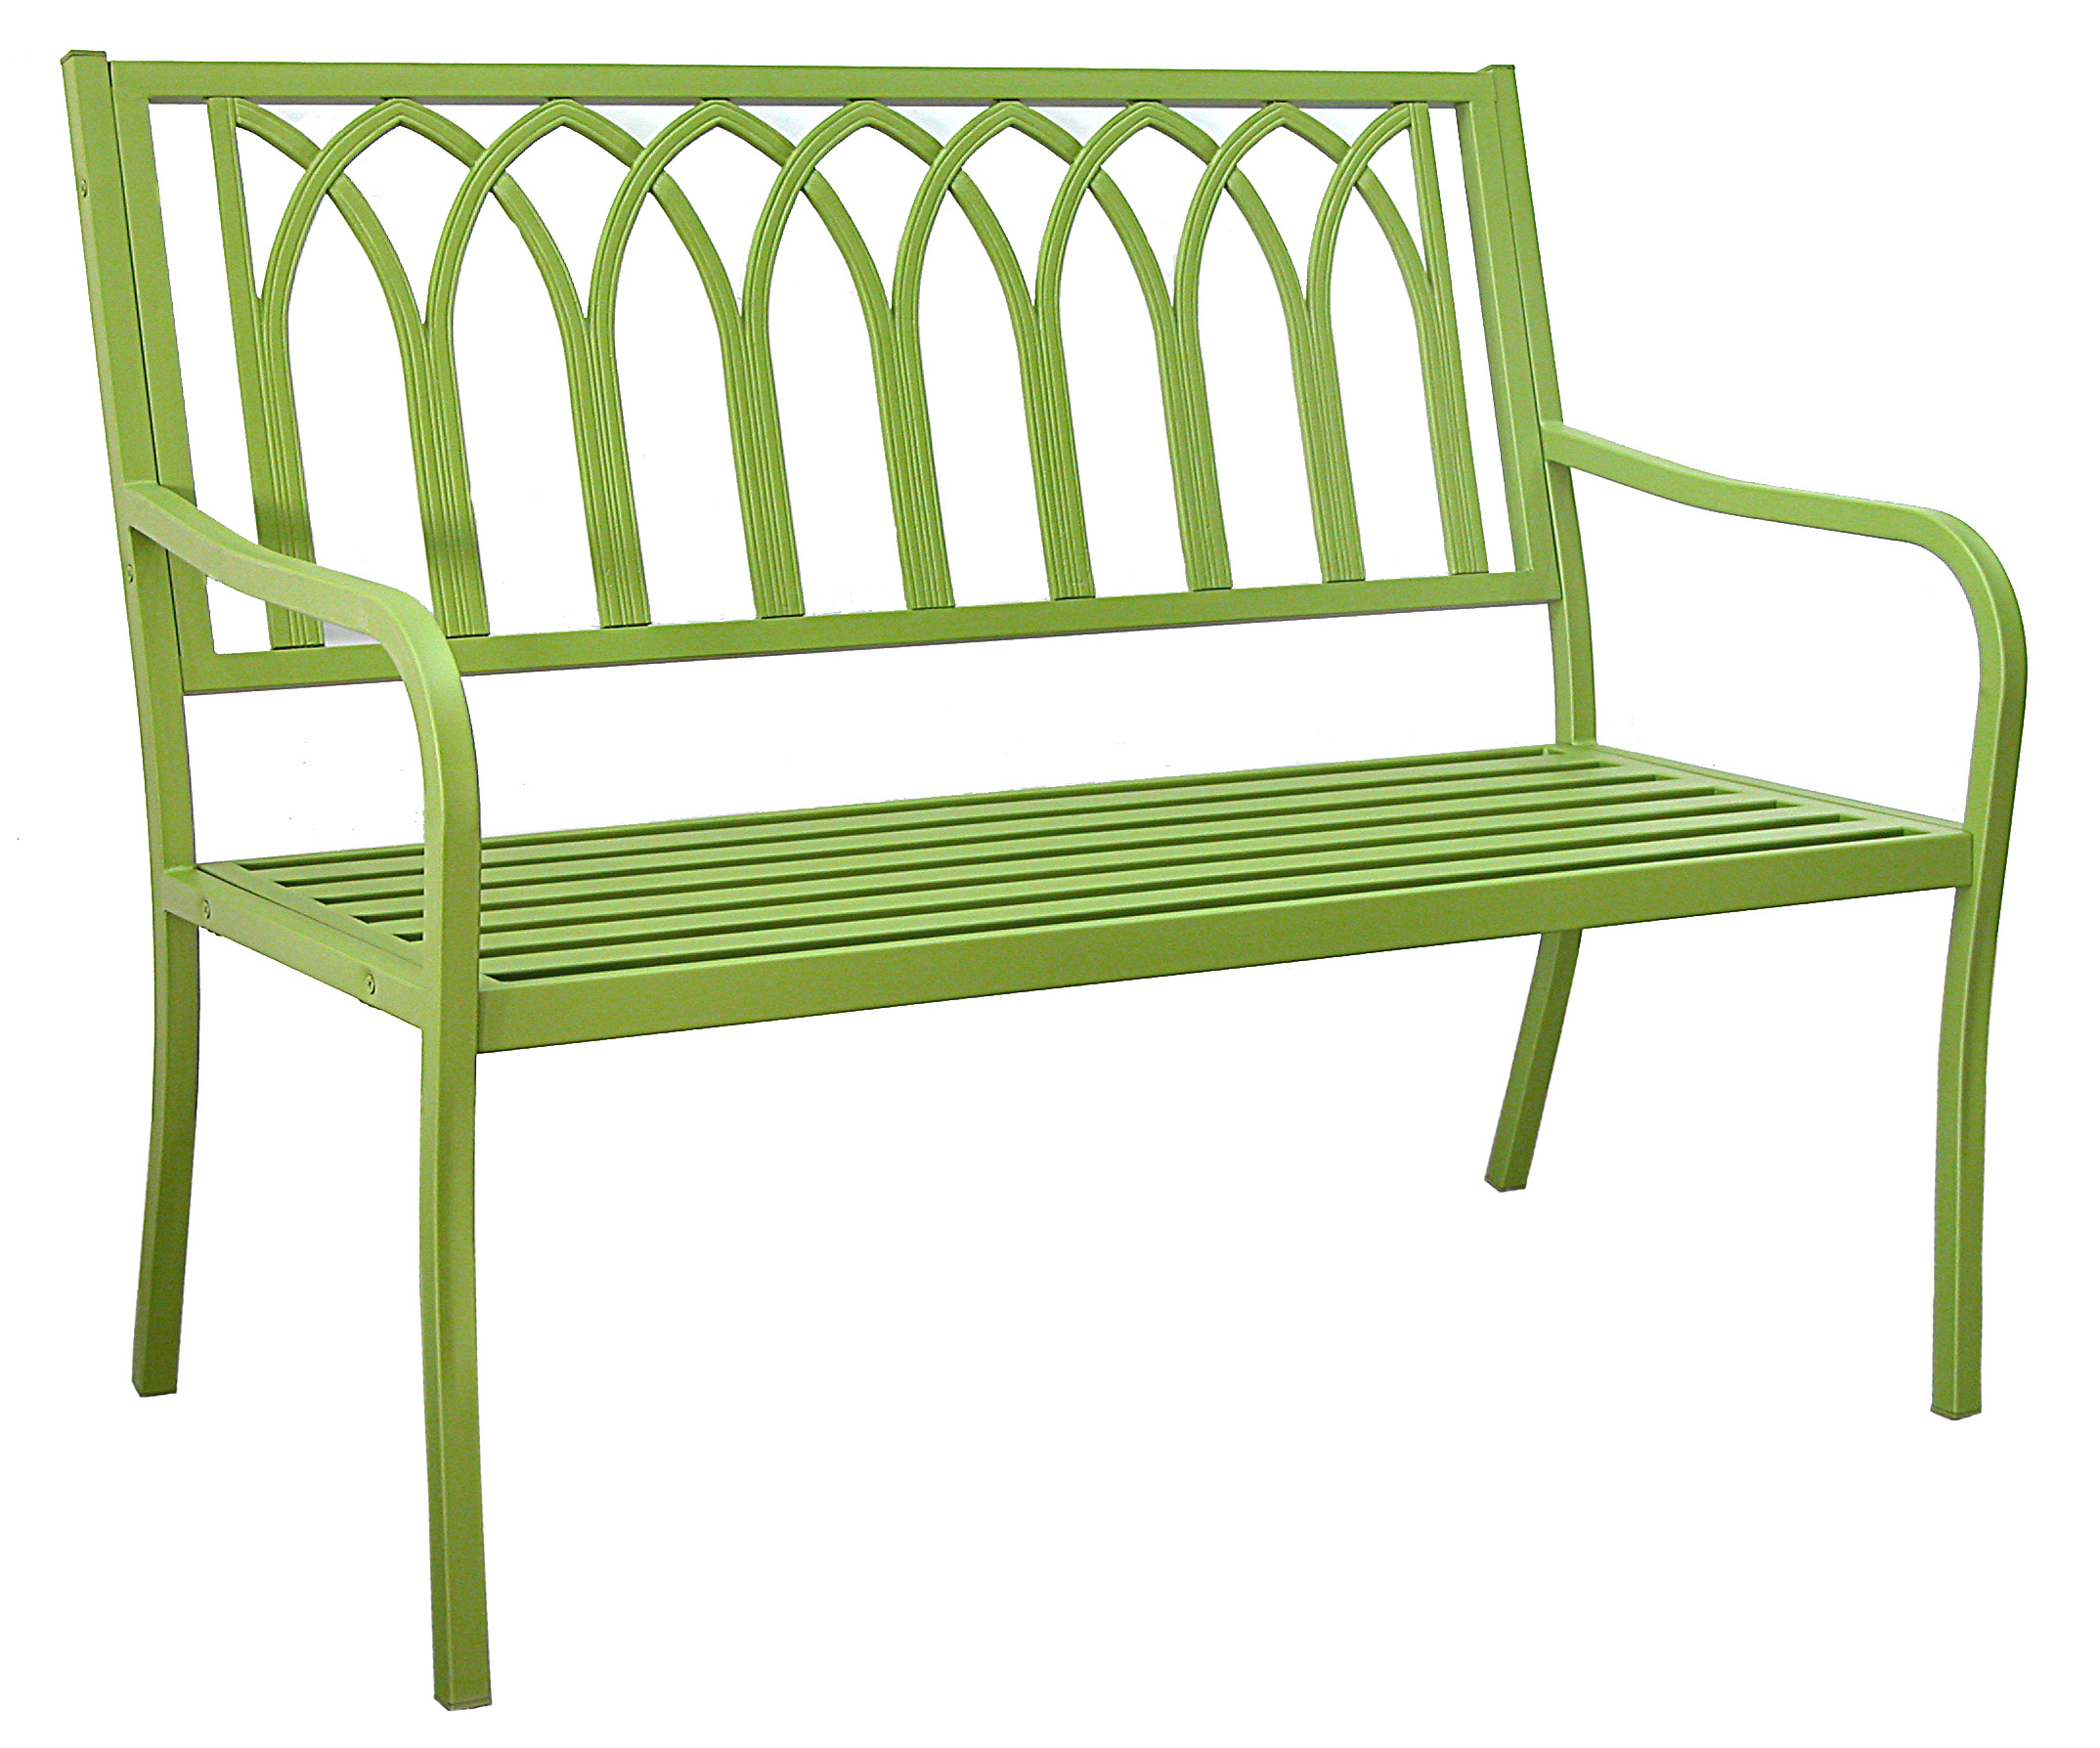 Patio Furniture Bench Steel Lakeside Urban Green